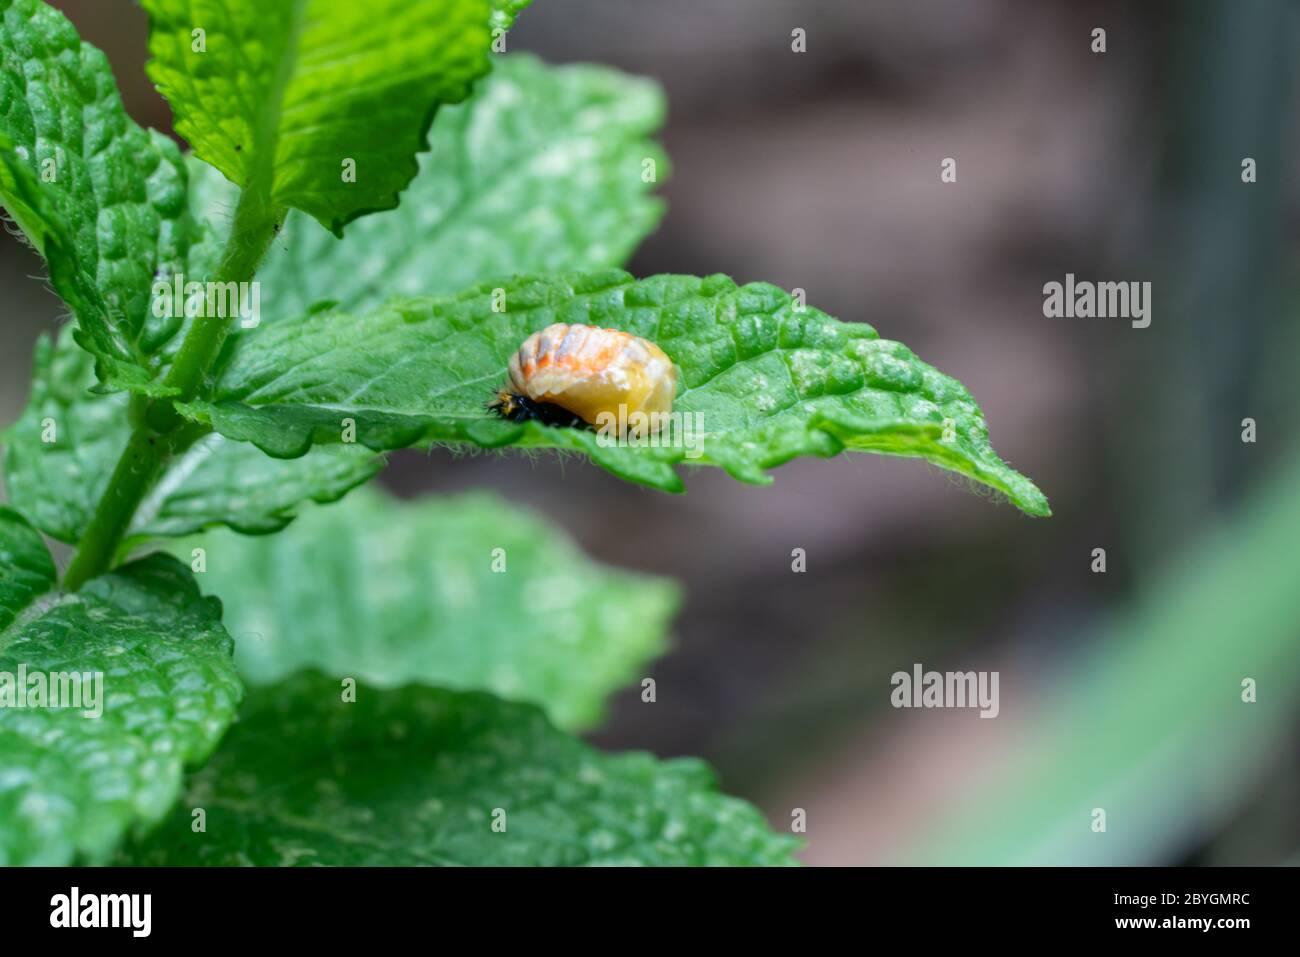 Pupation of a ladybug on a mint leaf in spring. Macro shot of living insect. Series image 5 of 9 Stock Photo